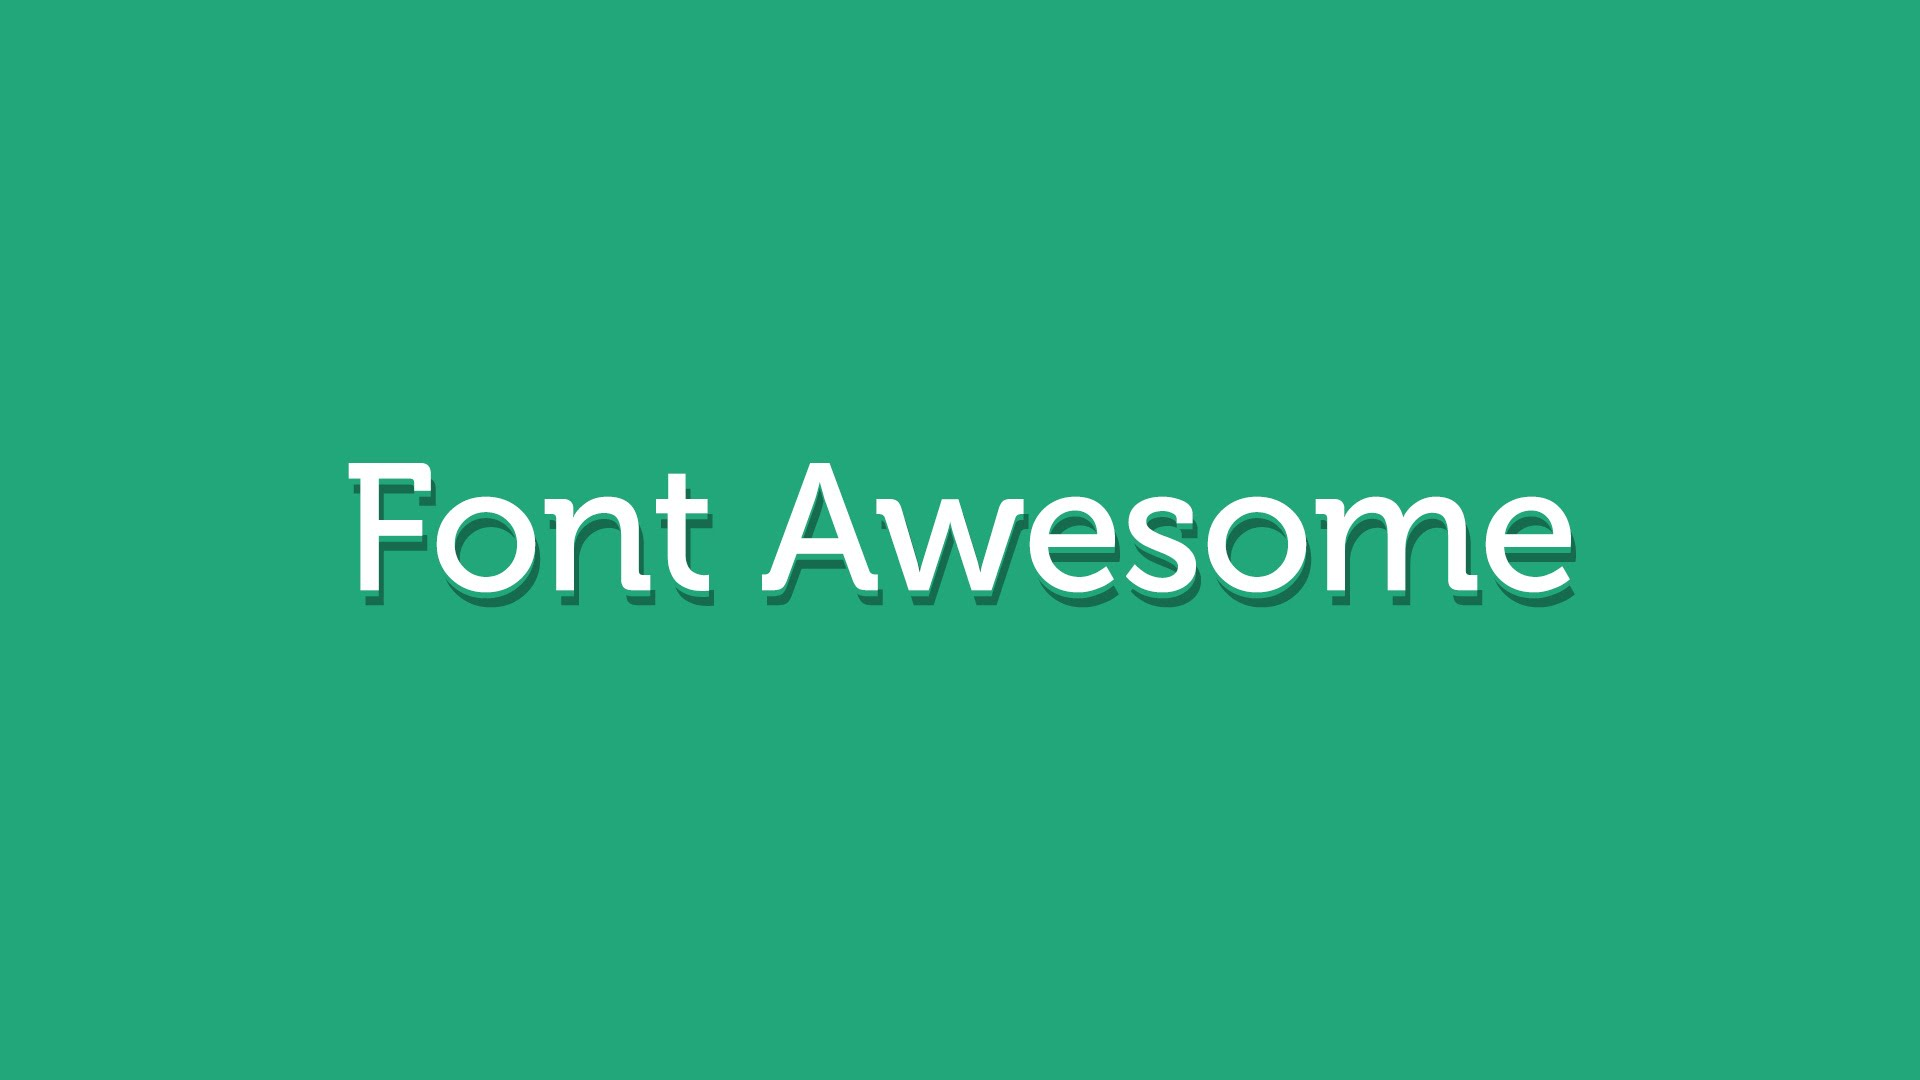 How To Add Font Awesome Icons To WordPress Manually